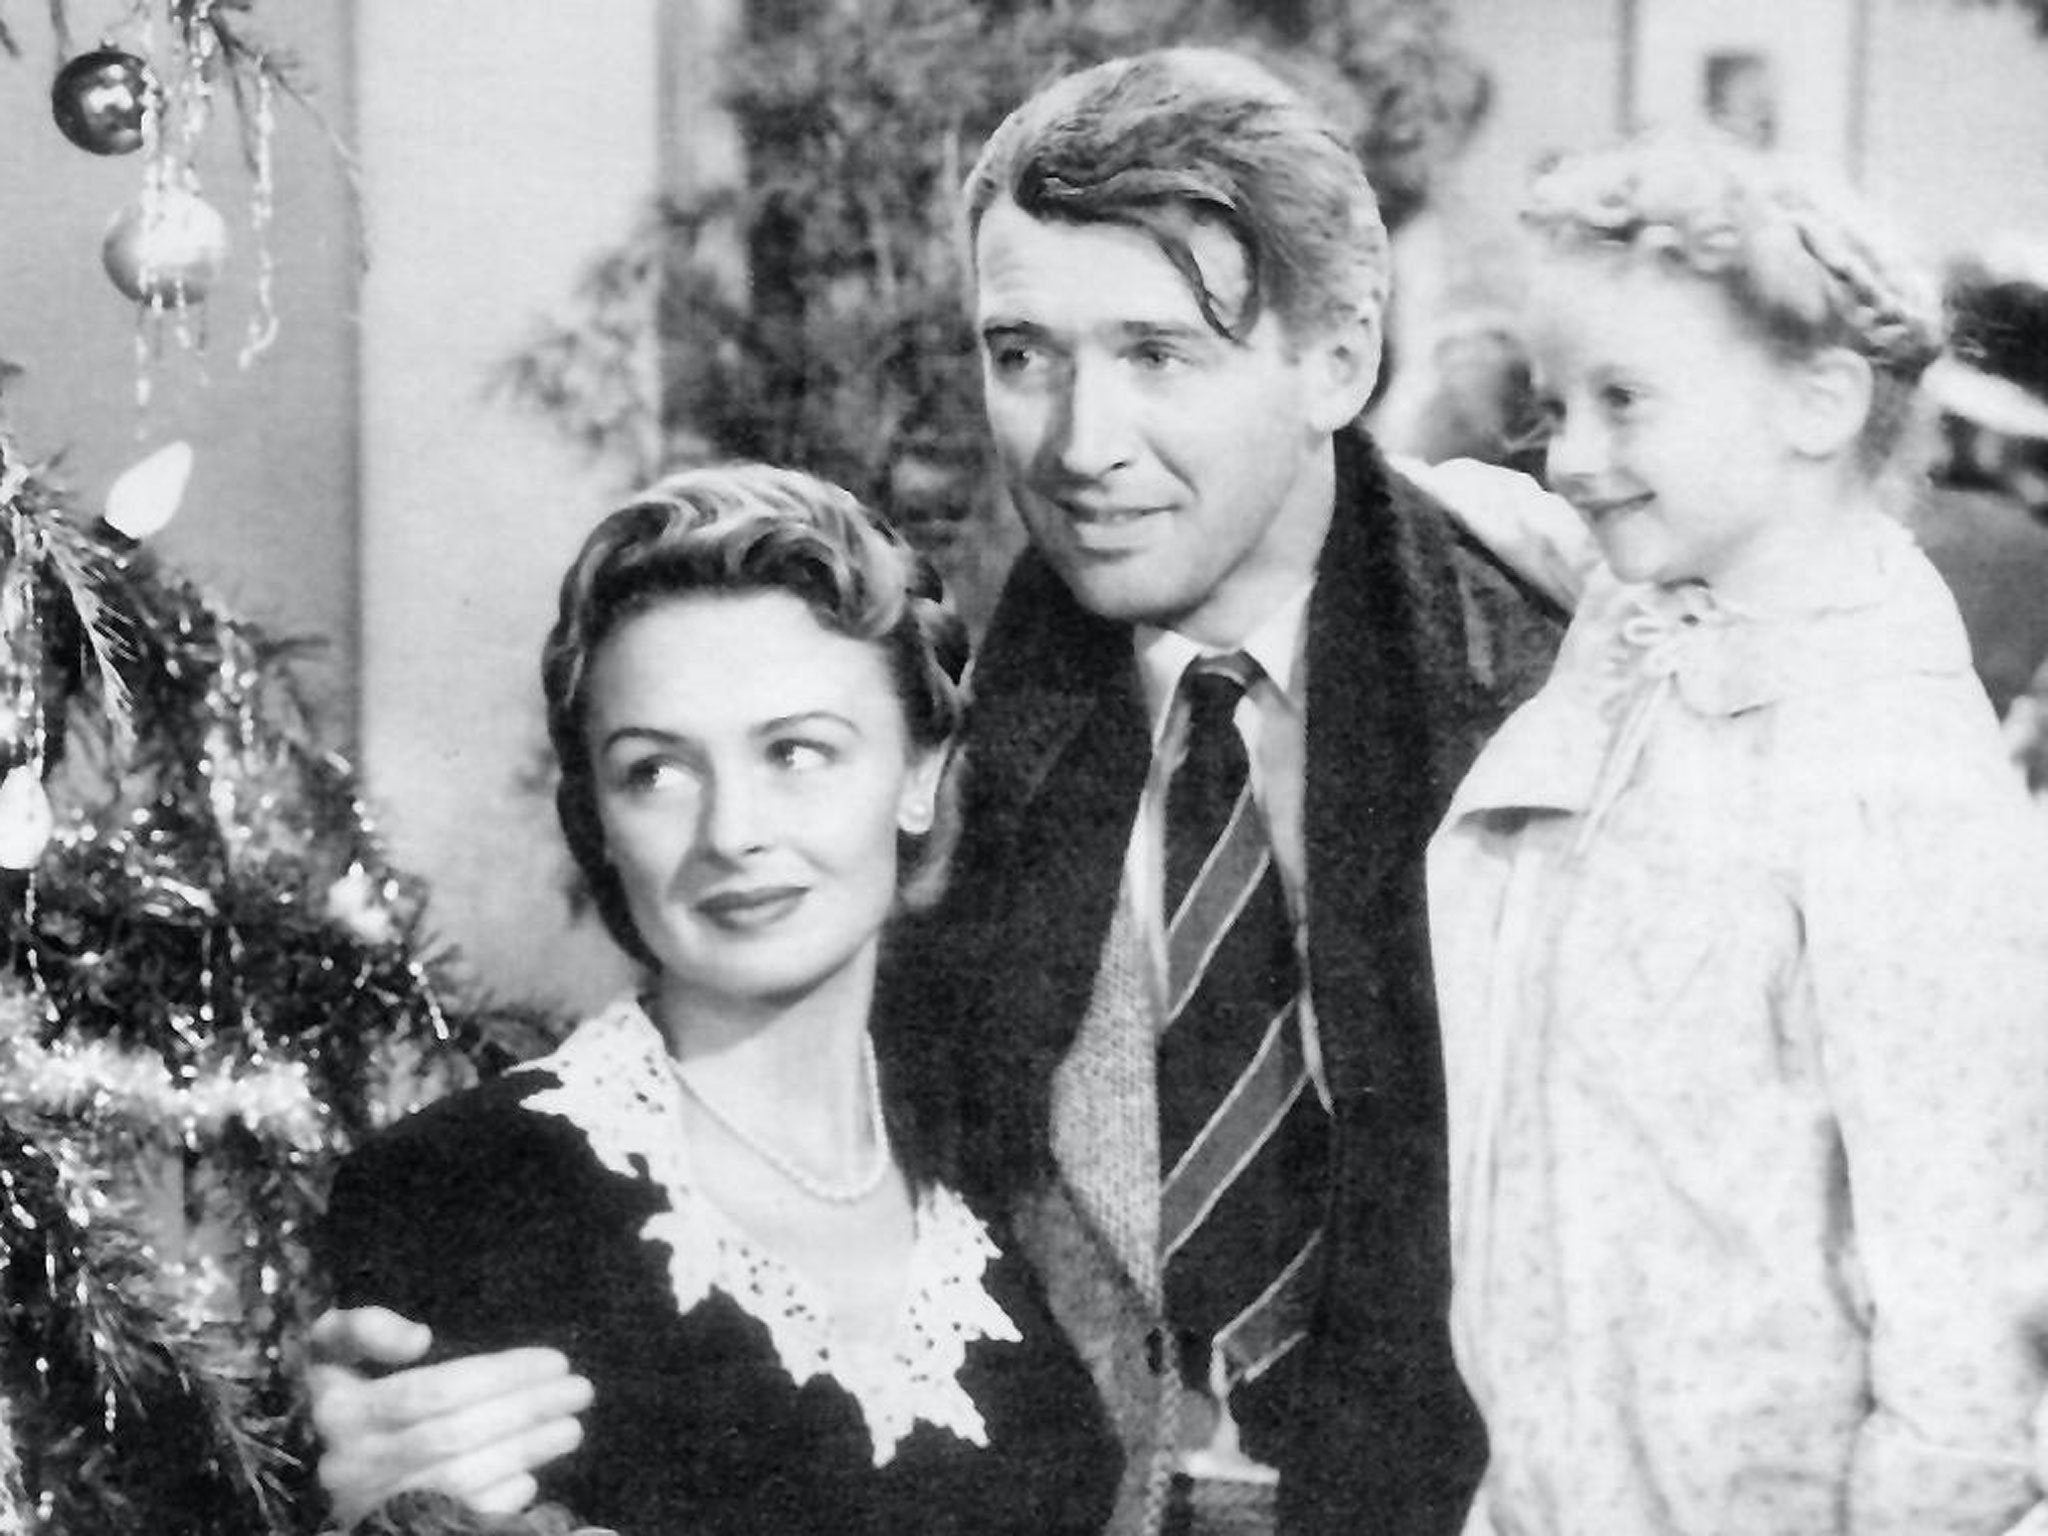 It's a Wonderful Life - James Steward and Donna Reed